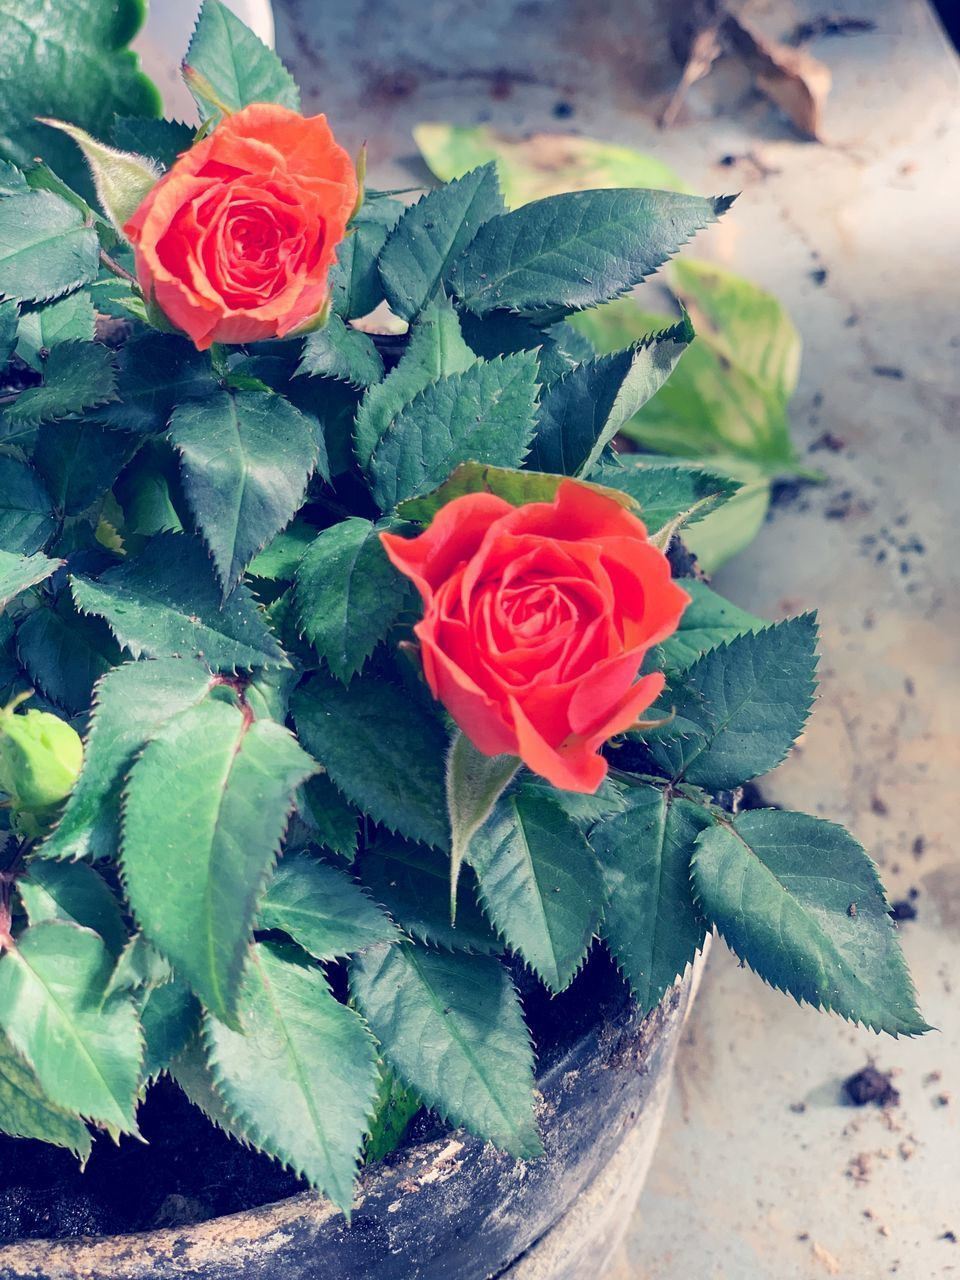 HIGH ANGLE VIEW OF ROSE PLANT